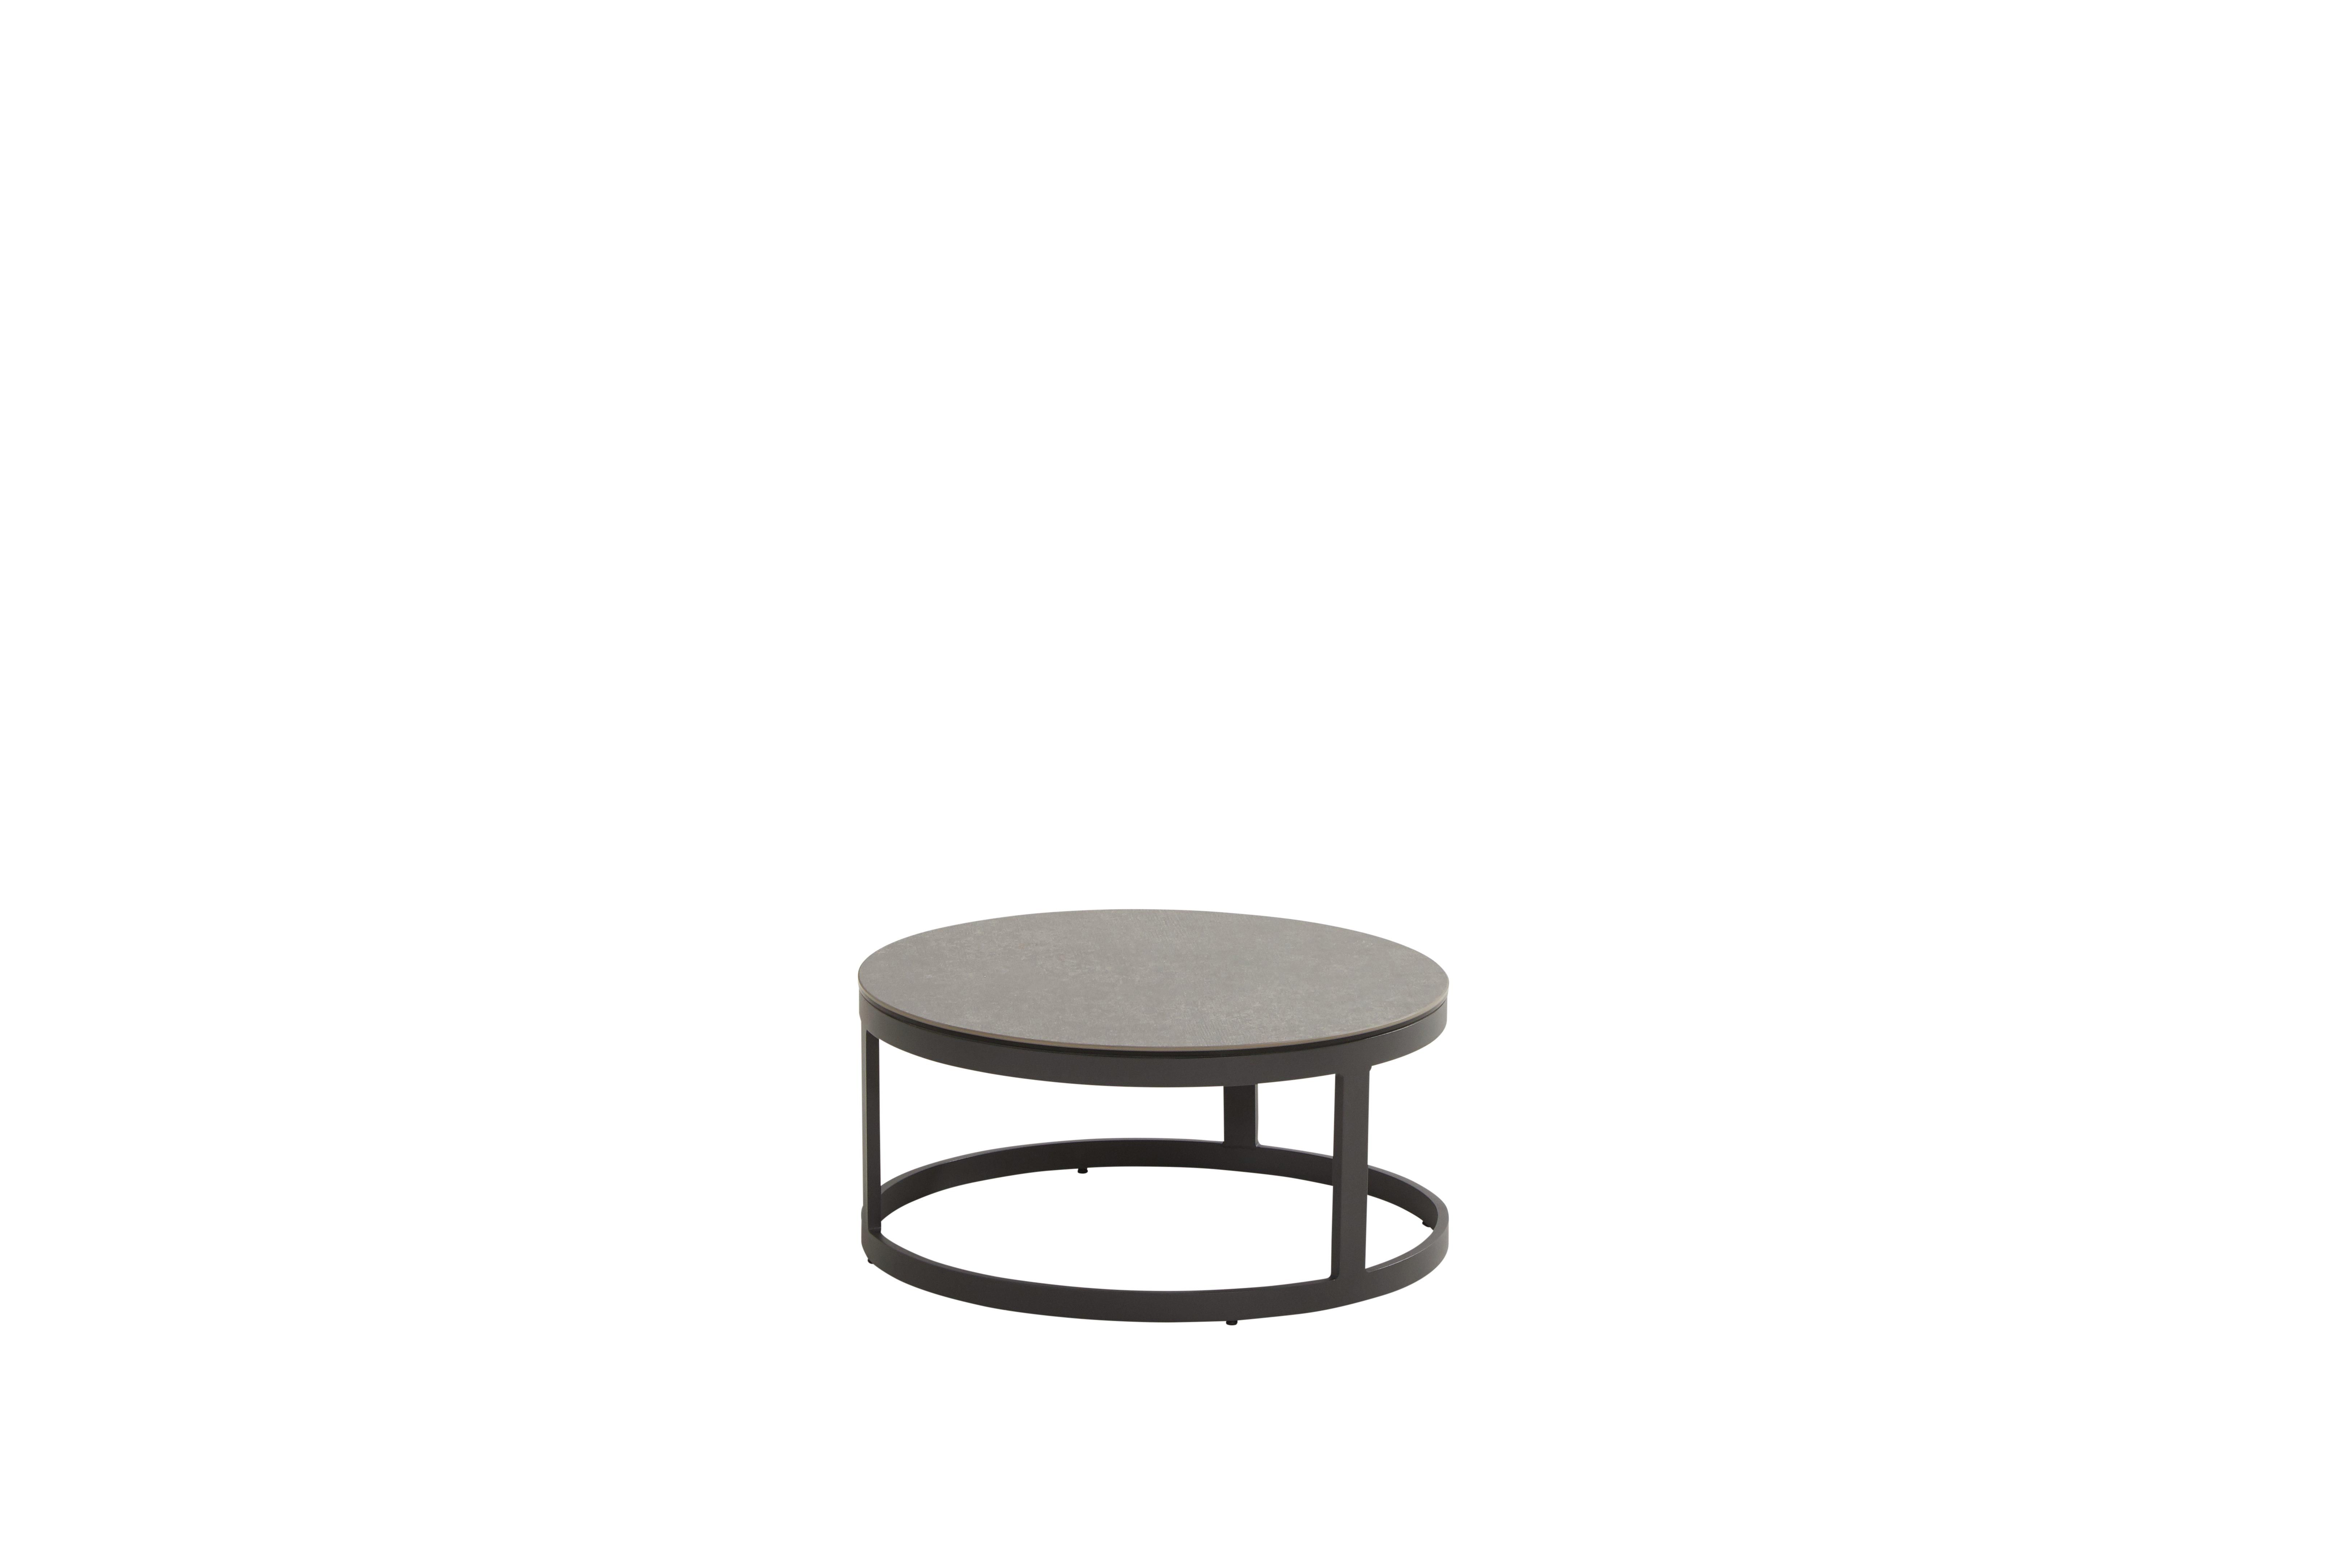 91024_ Stonic set of 2 coffee tables 80 and 60 cm - CERAMIC ONLY